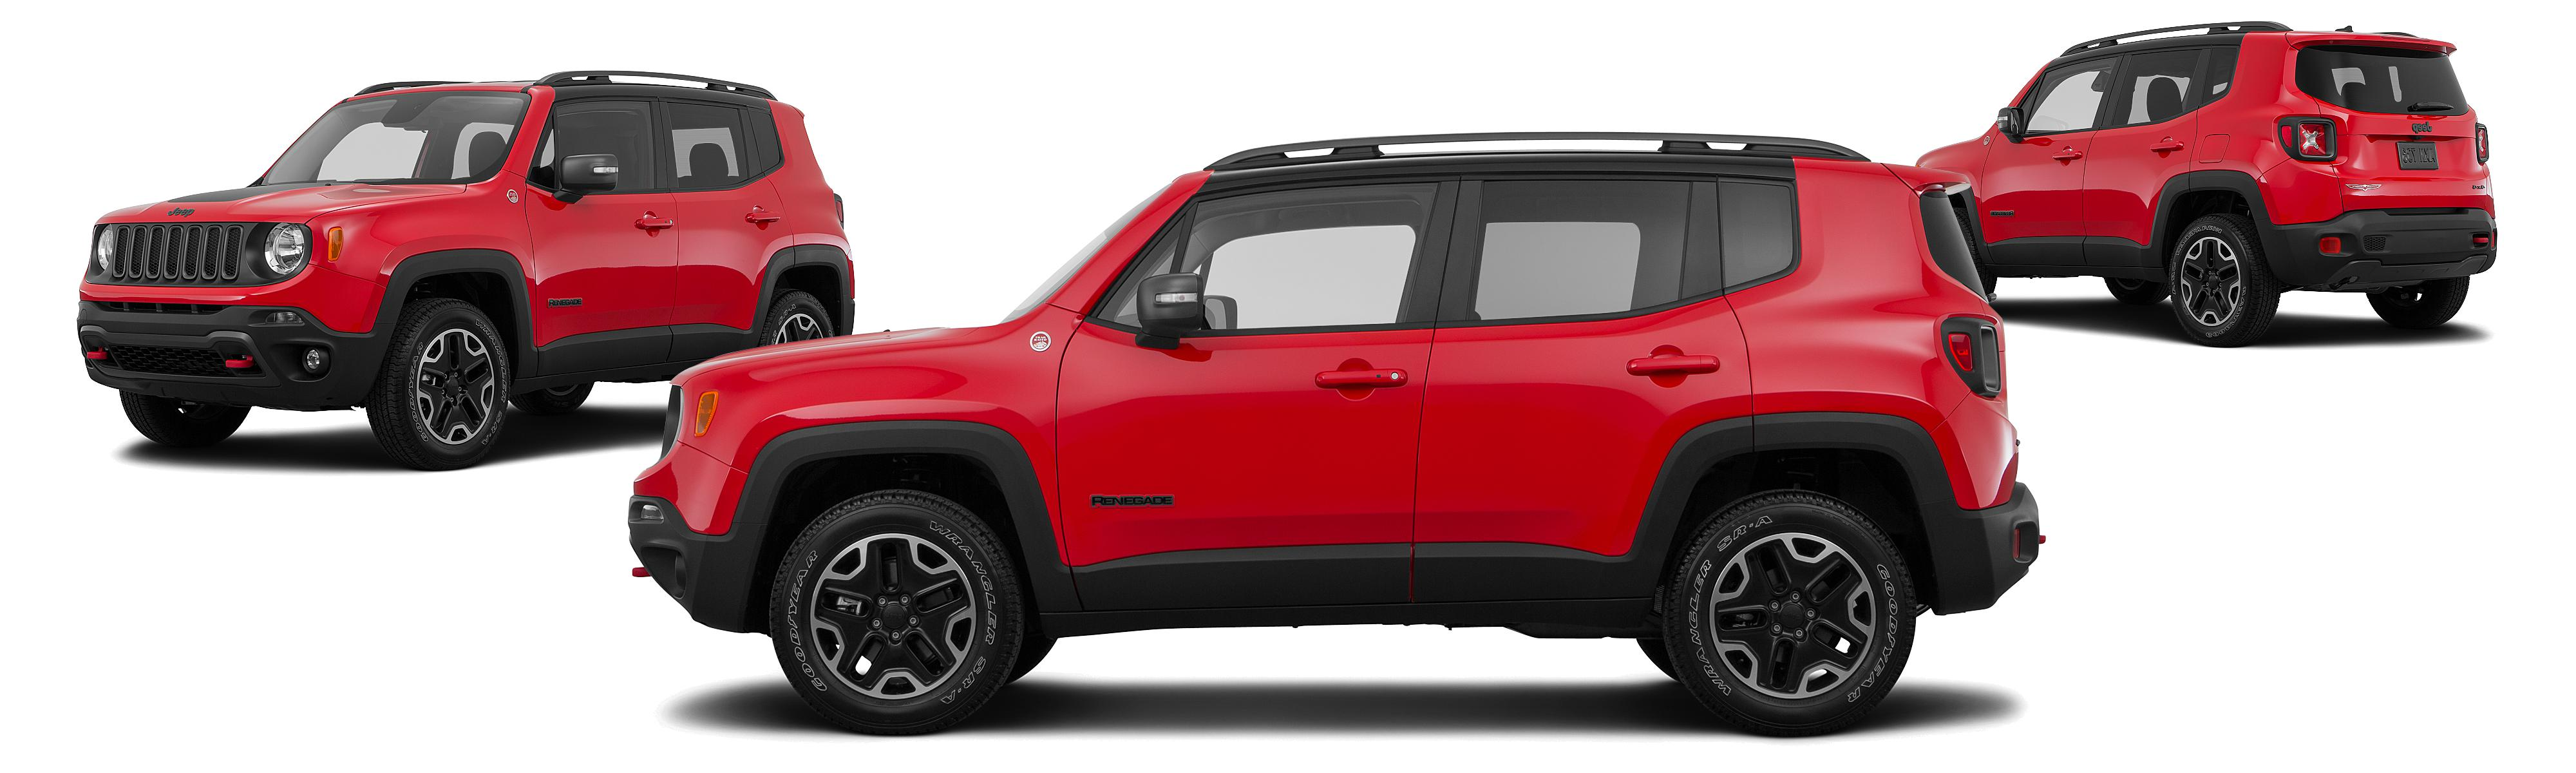 2015 Jeep Renegade 4x4 Trailhawk 4dr SUV Research GrooveCar